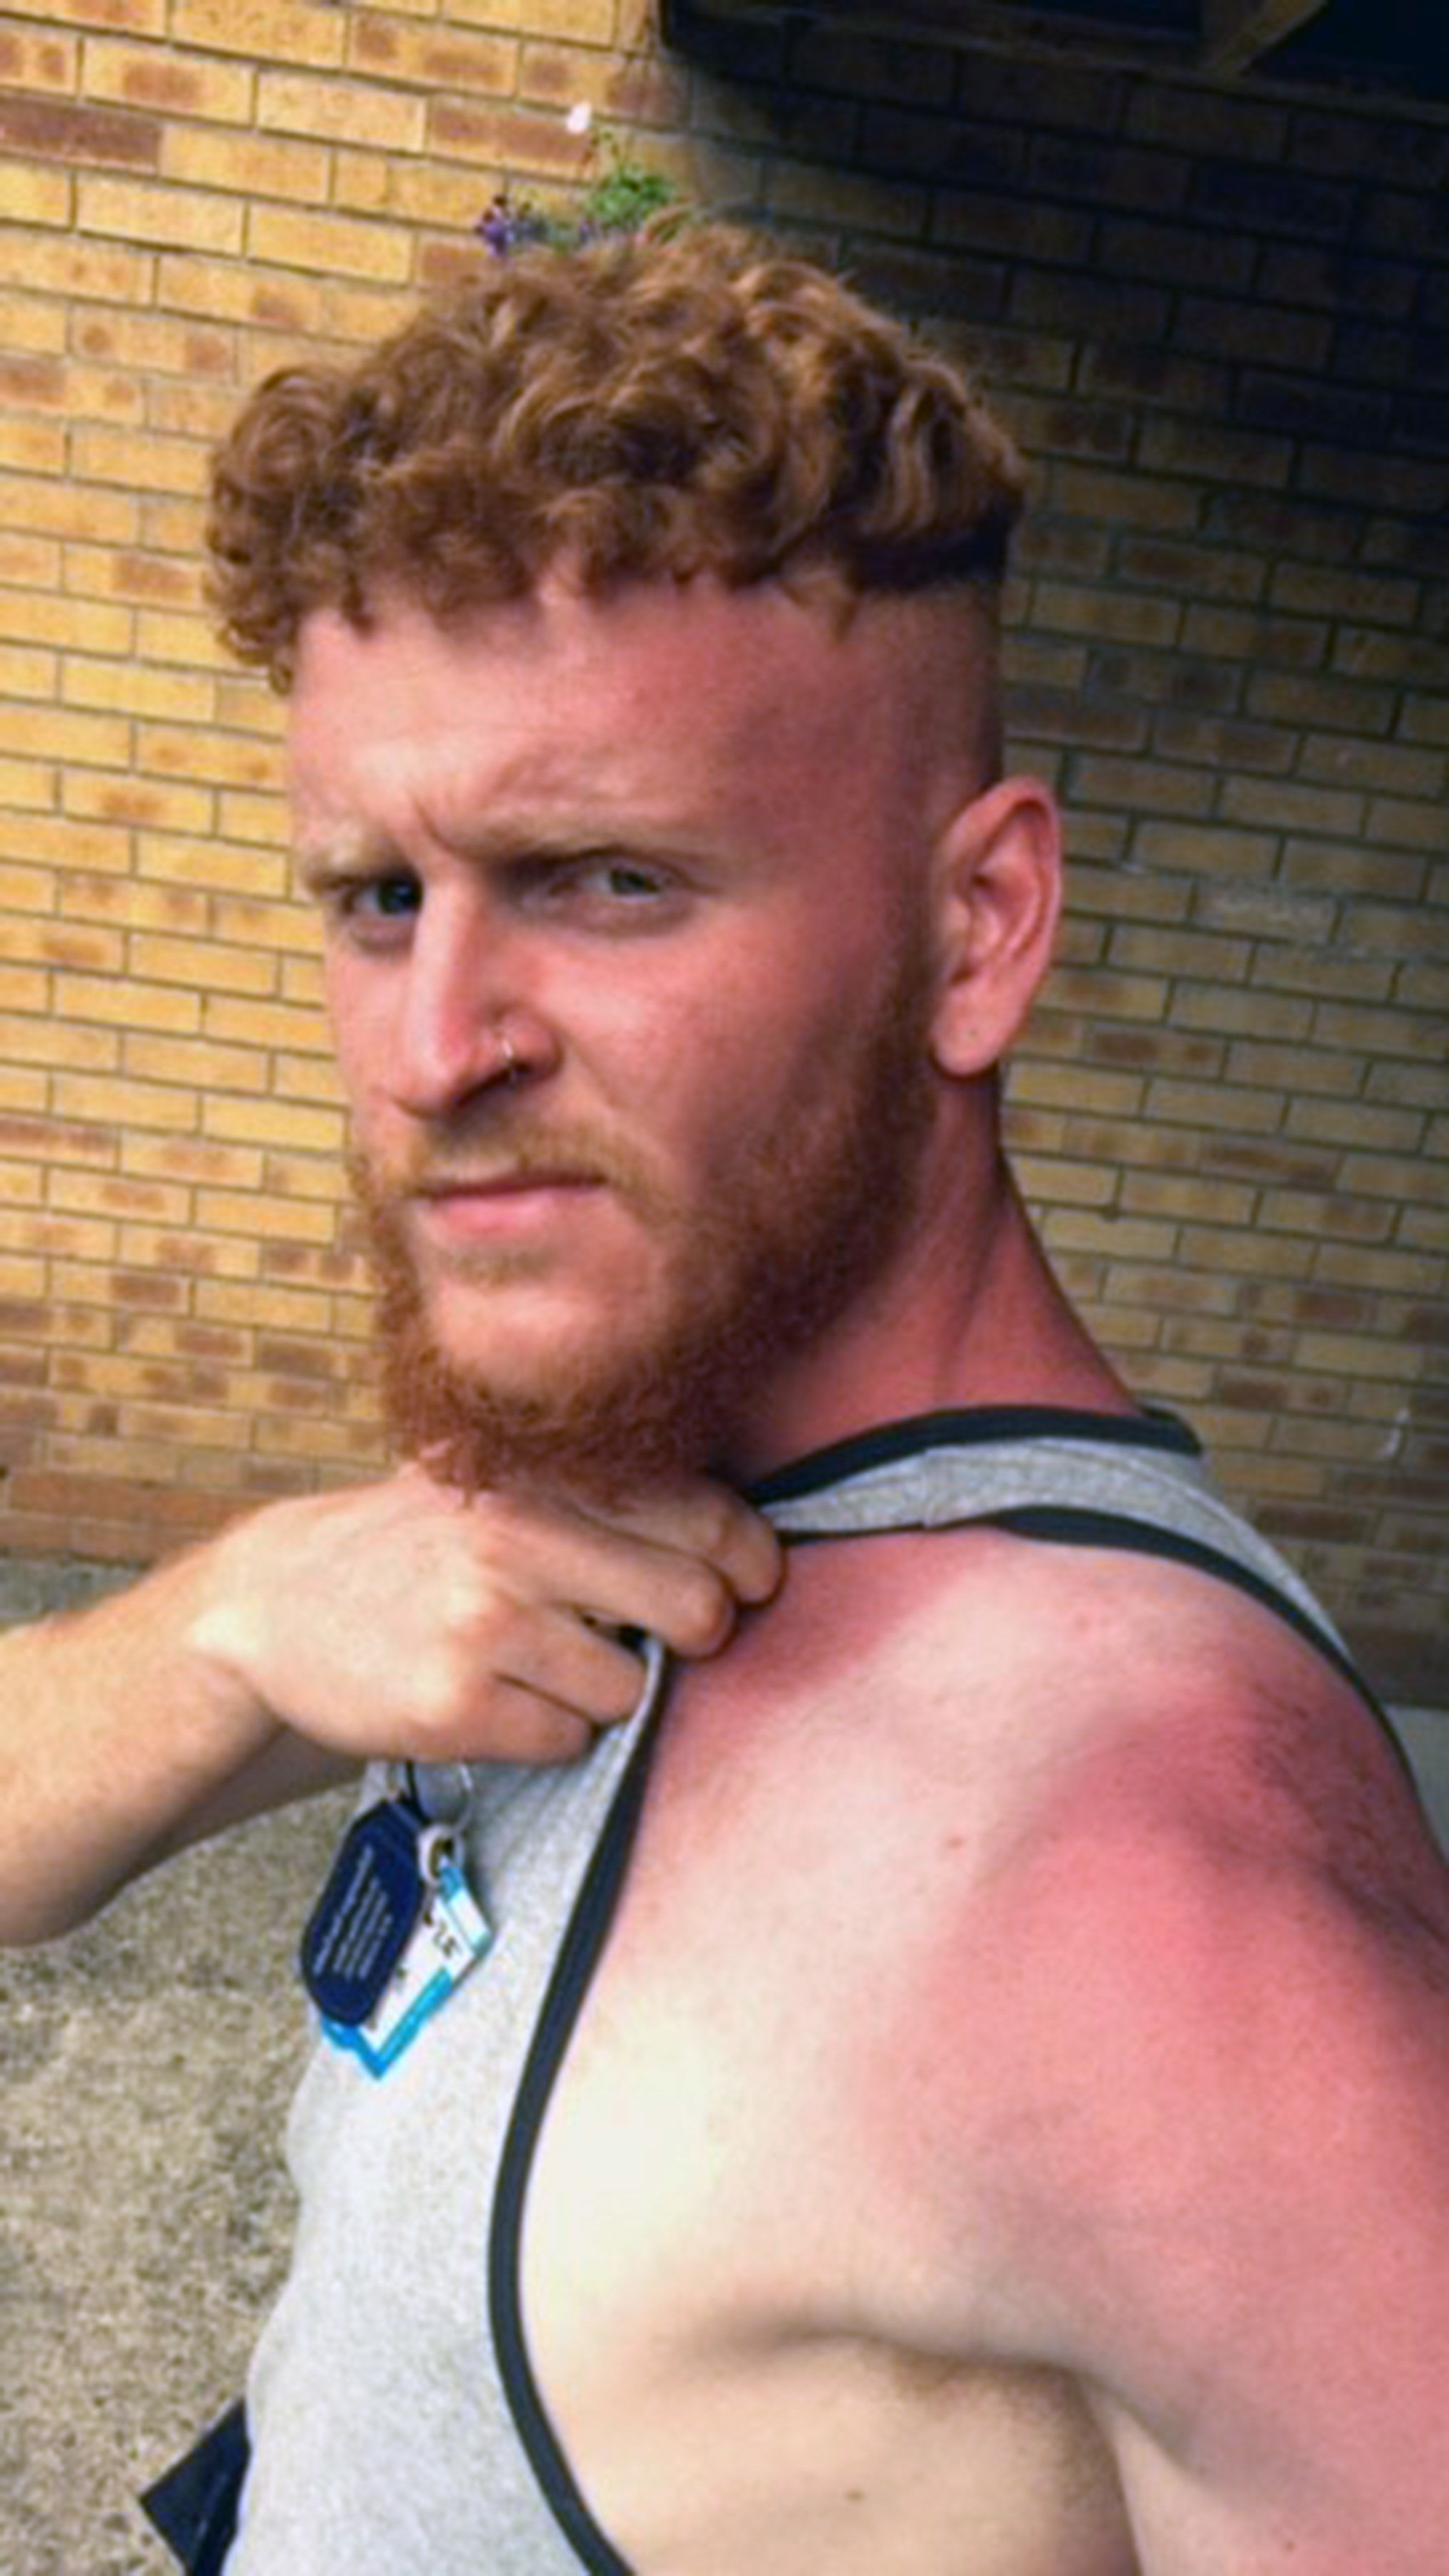 Gardener Warns Of Sun Dangers After Being Left With Second-Degree